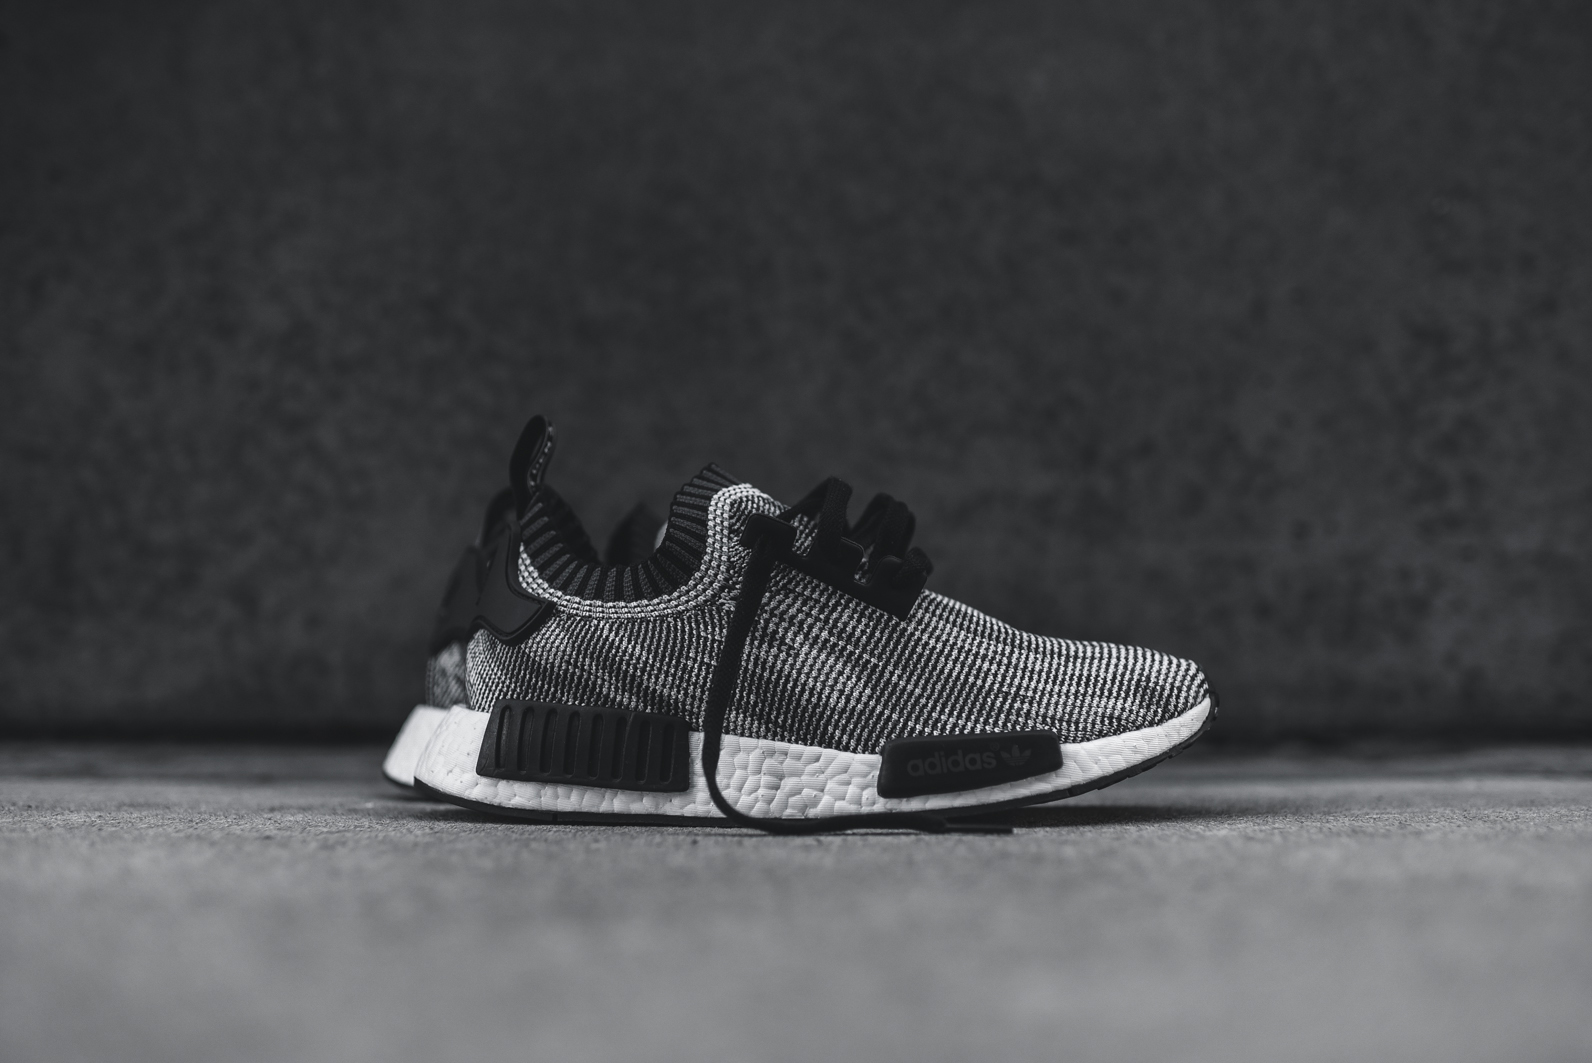 njsdlm Buy cheap - nmd womens for sale,adidas nmd r1 Orange,shoes sale